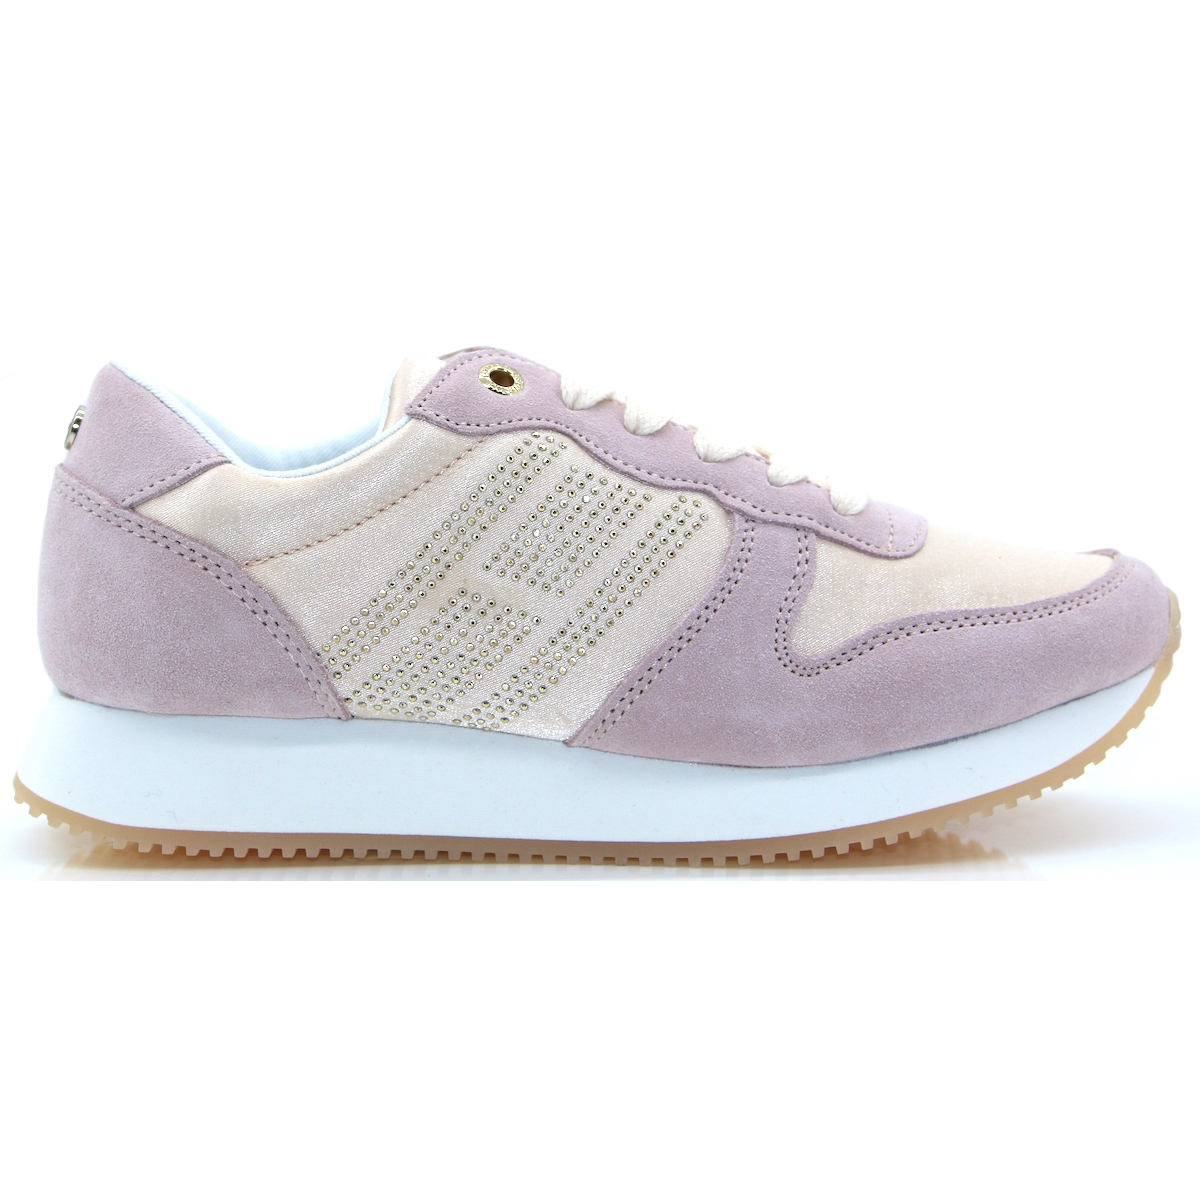 5b9221cdd414 Sparkle Satin City Sneaker - Tommy Hilfiger LIGHT PINK TRAINERS. Tap to  expand